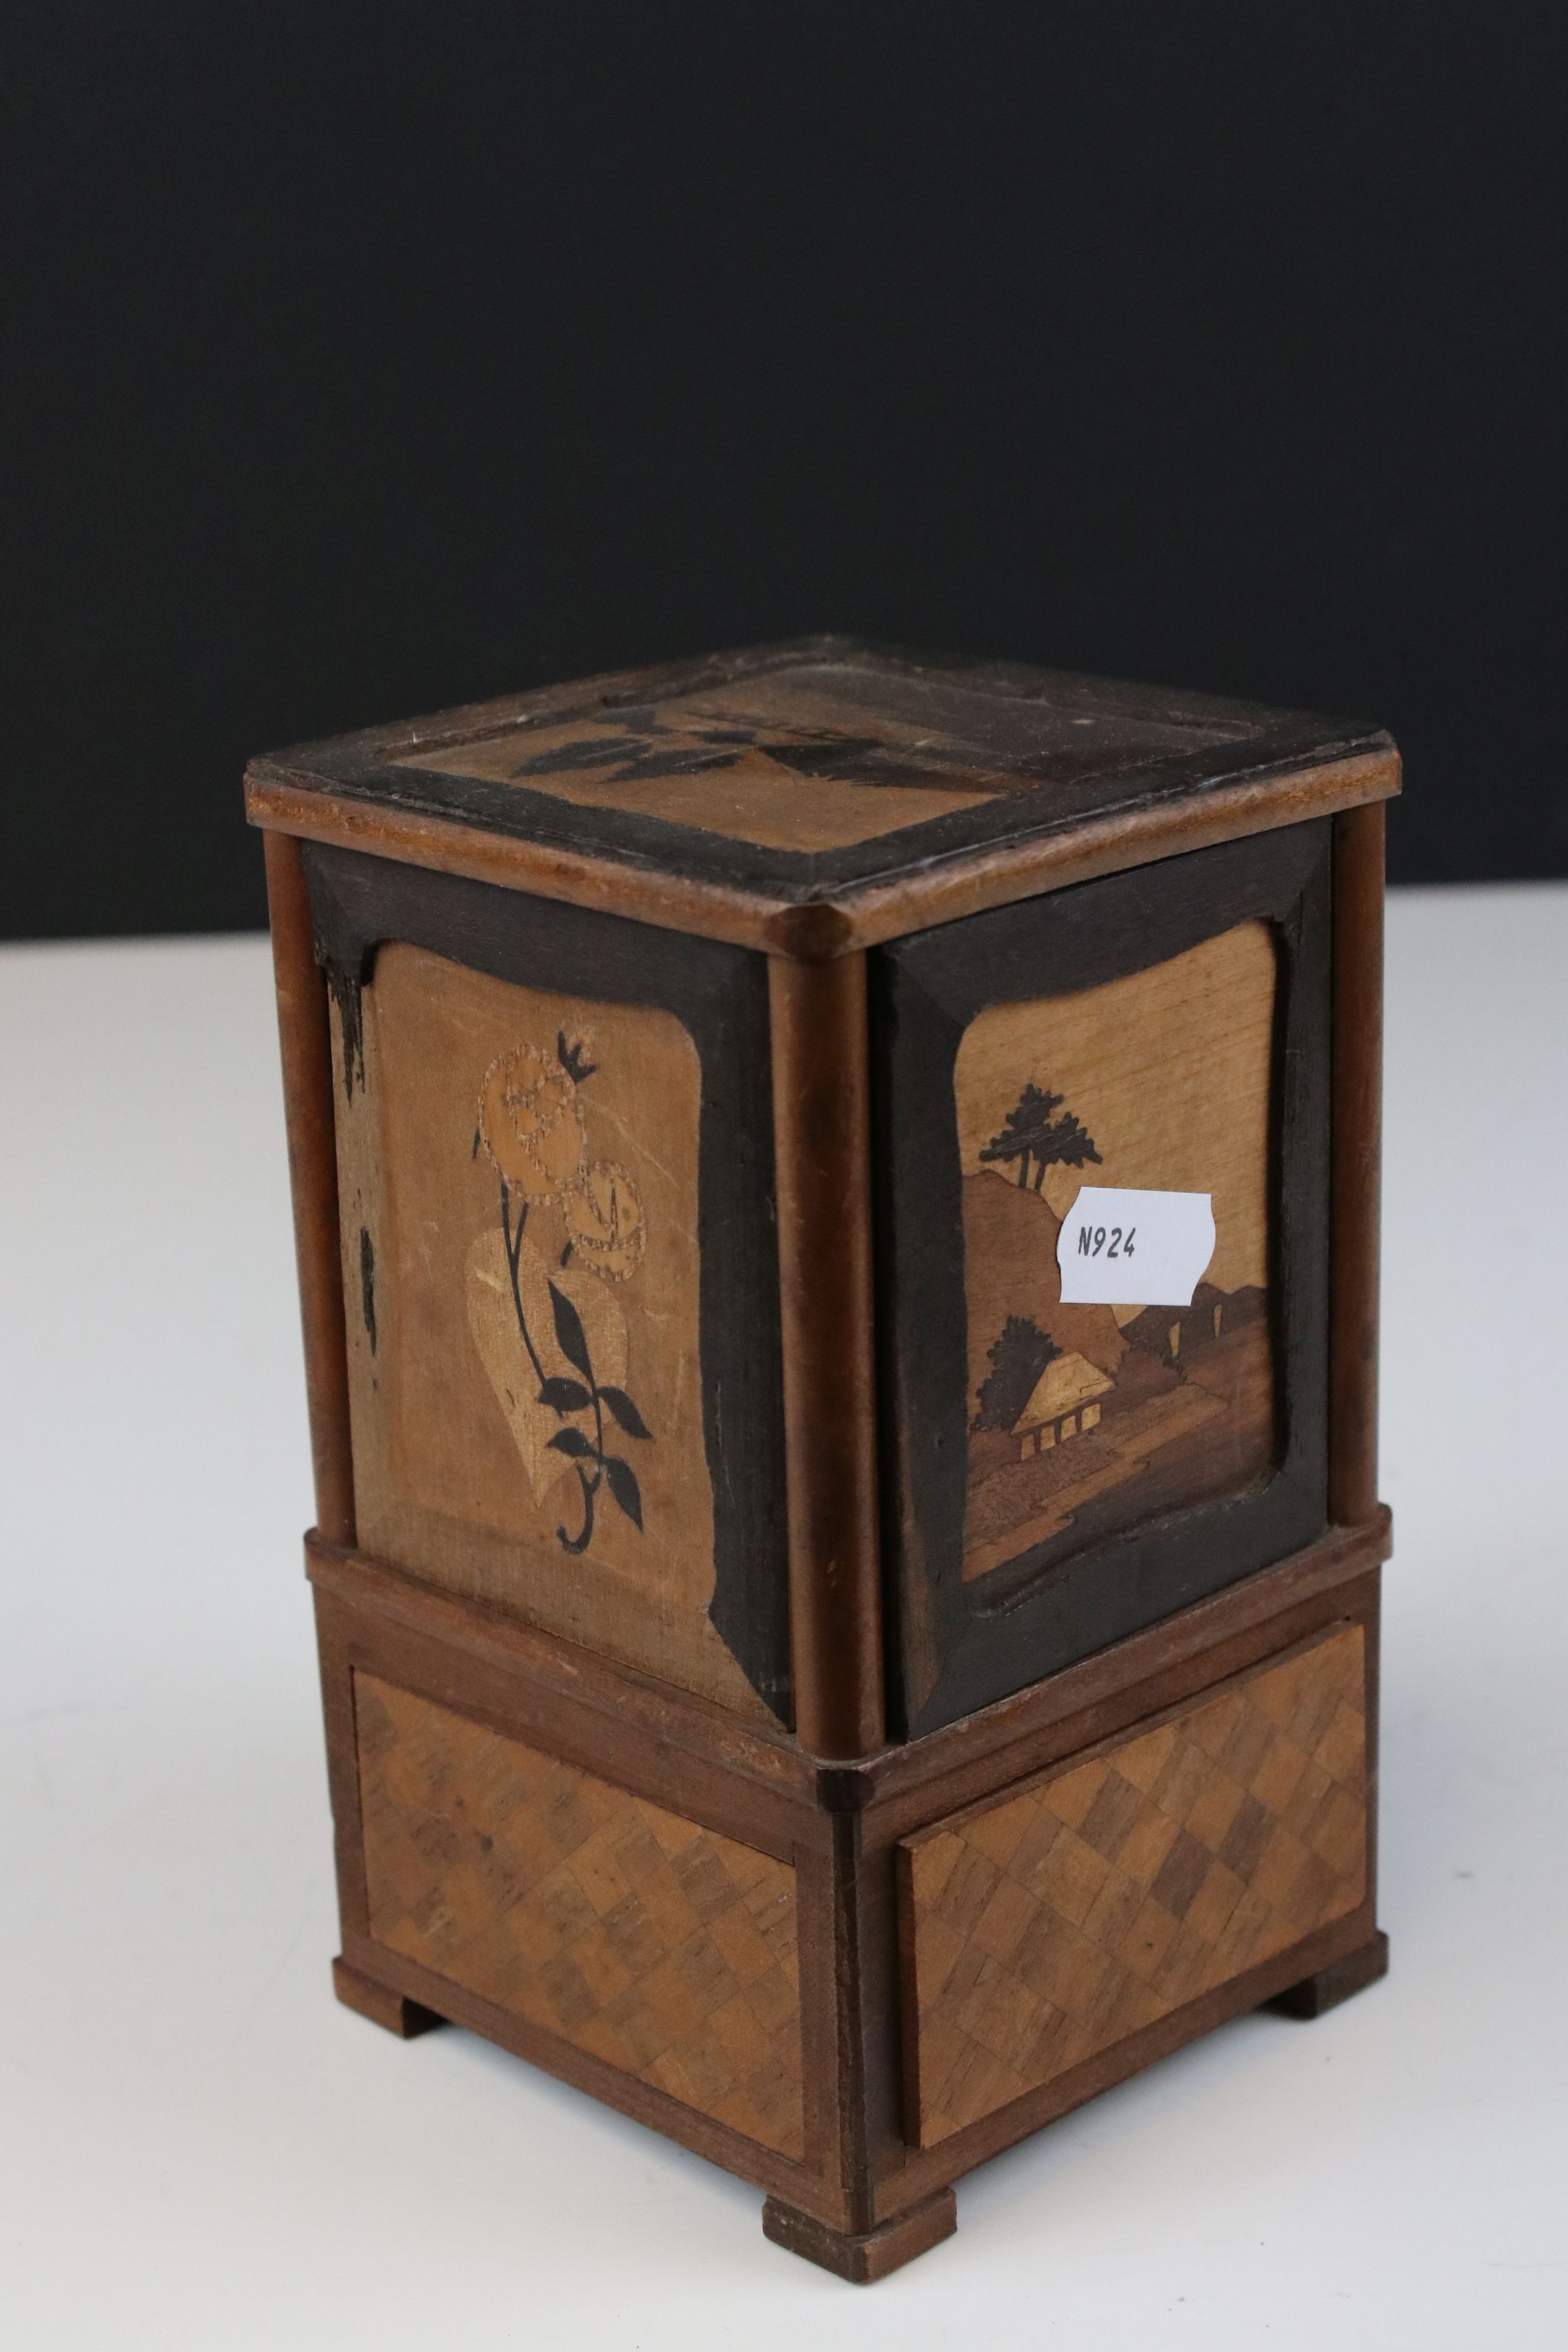 Japanese Wooden Inlaid Table Cigarette Dispenser, decorated with scenes of Mount Fuji, Flowers and - Image 2 of 5